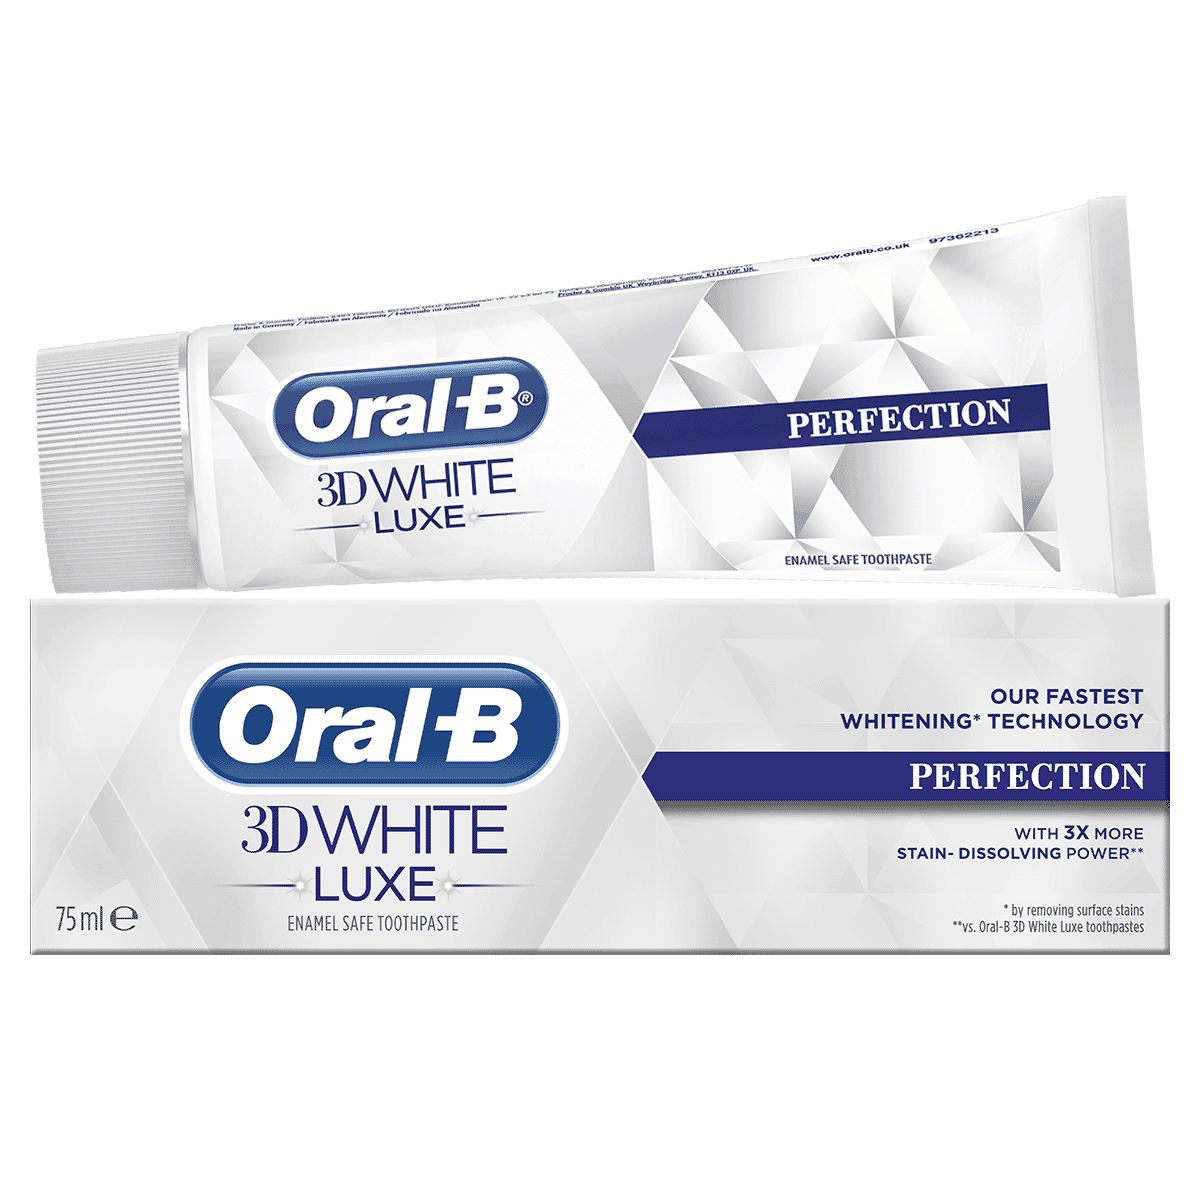 Oral-B 3D White Luxe Perfection Toothpaste